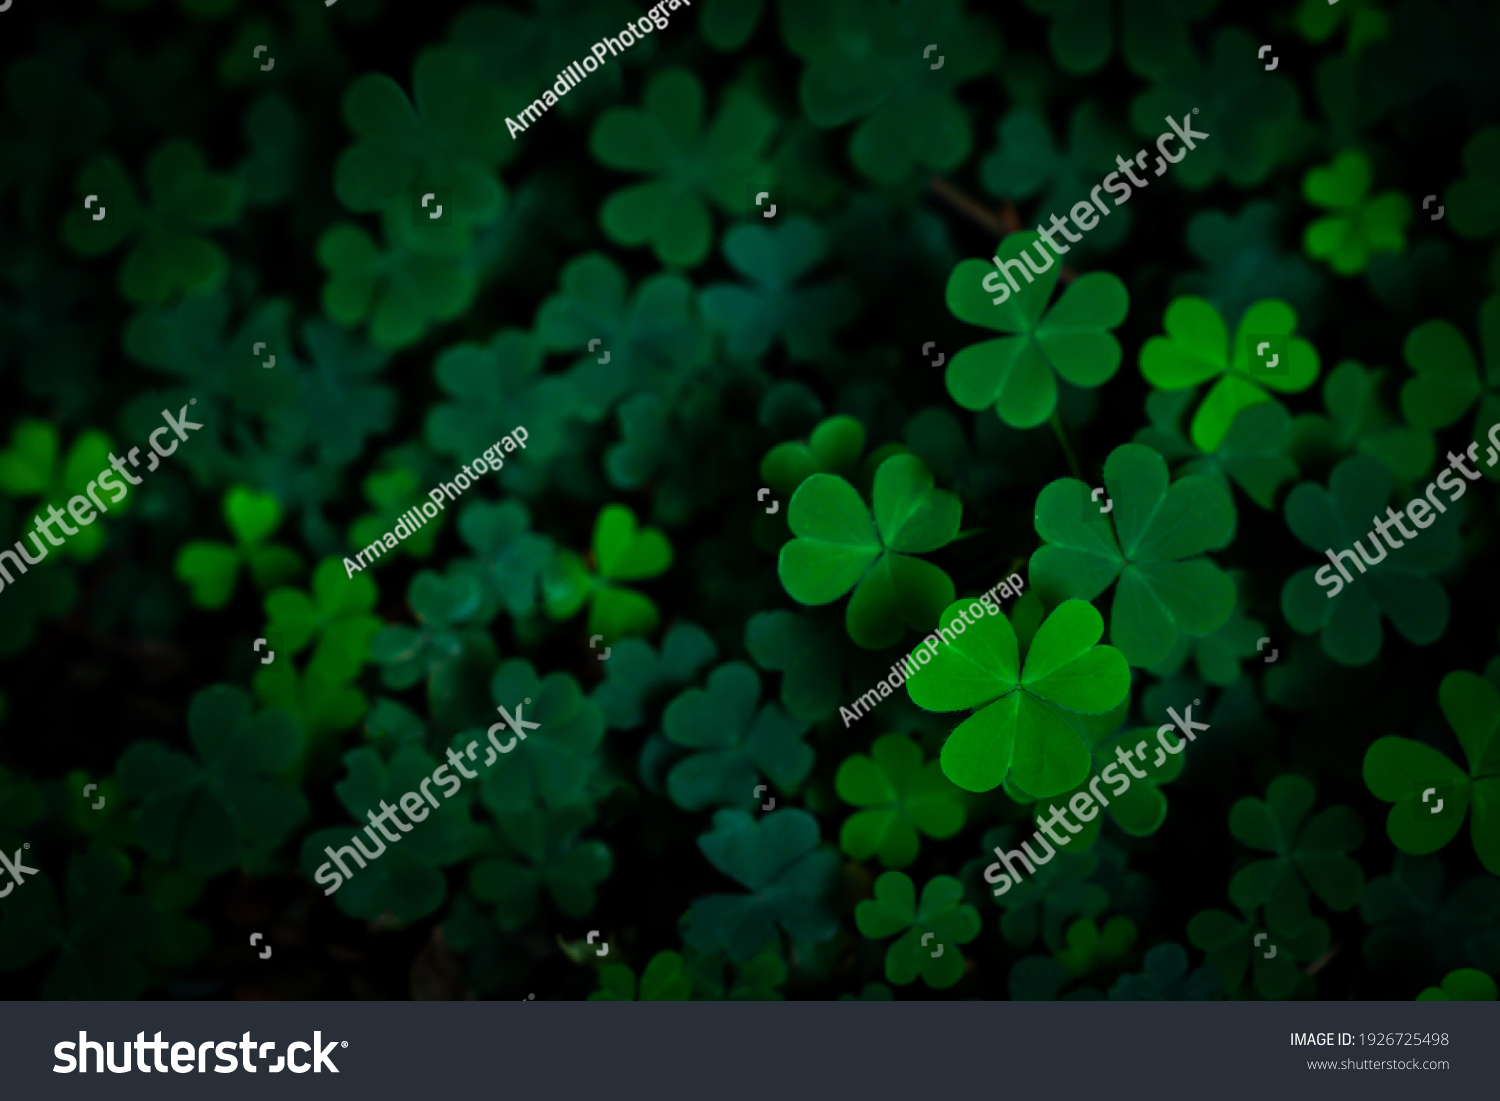 Small green Clover leaves pattern background, Natural and St. Patrick's day background and shamrock wallpaper. vacation and holiday clovers symbol,Spring concept. #1926725498